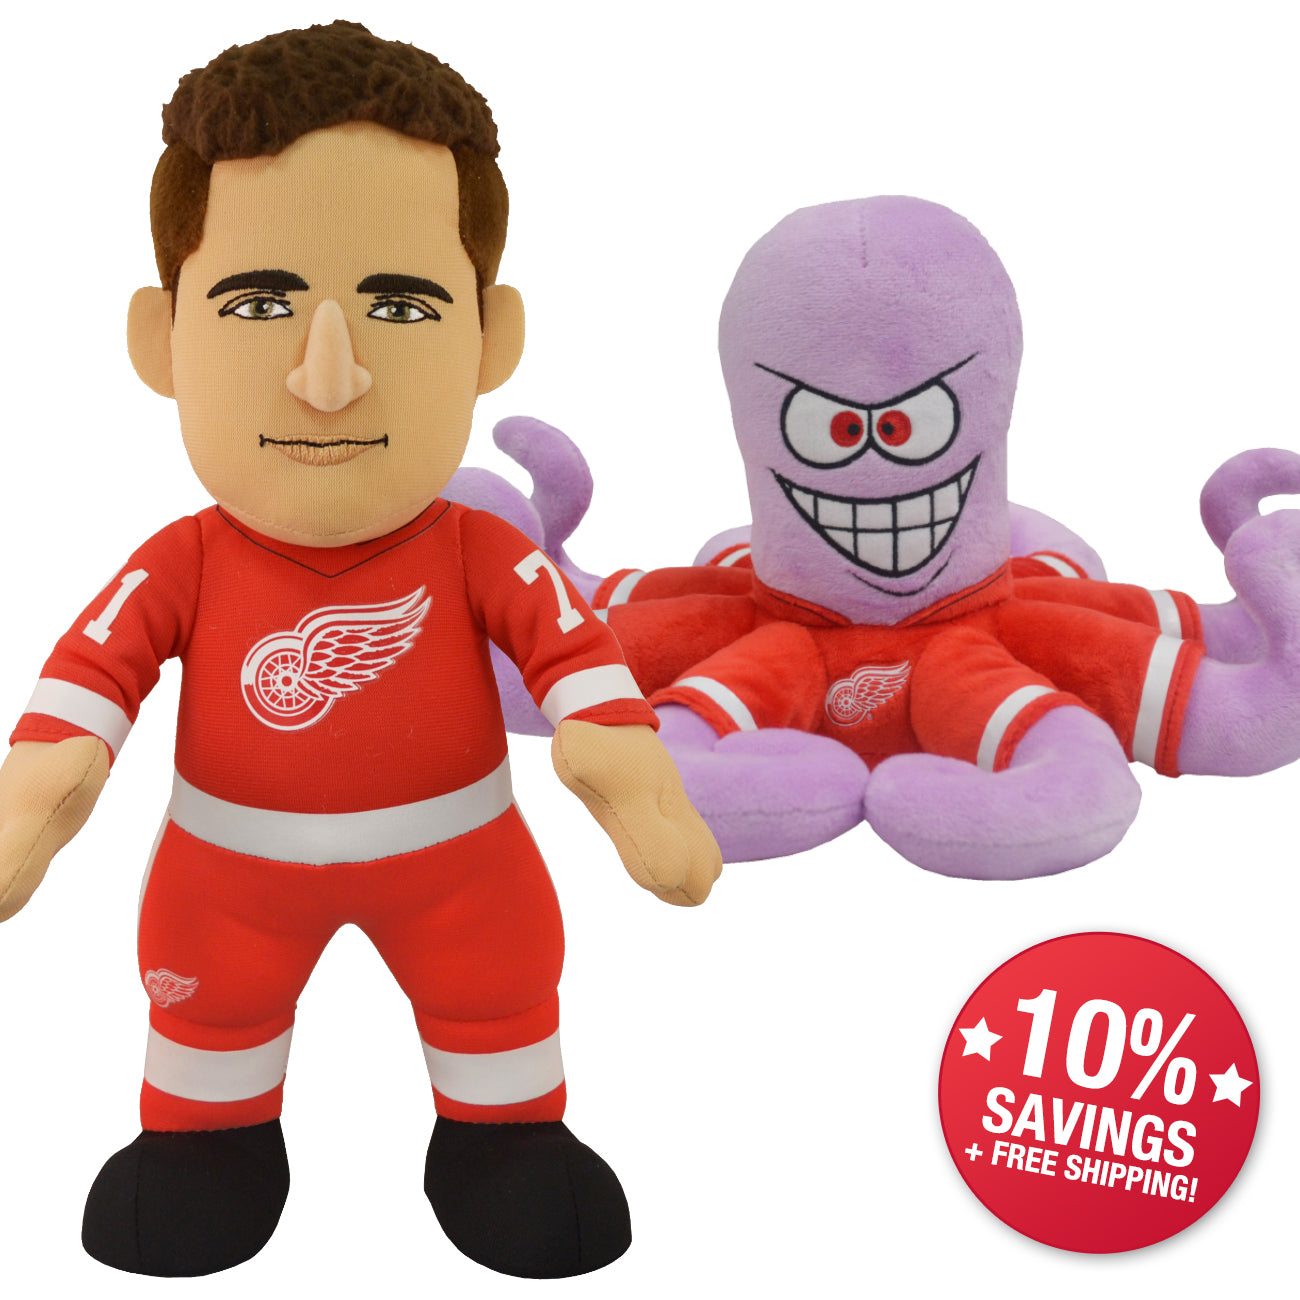 best value d4fd4 0a63c Detroit Red Wings Bundle: Mascot Al The Octopus and Dylan ...